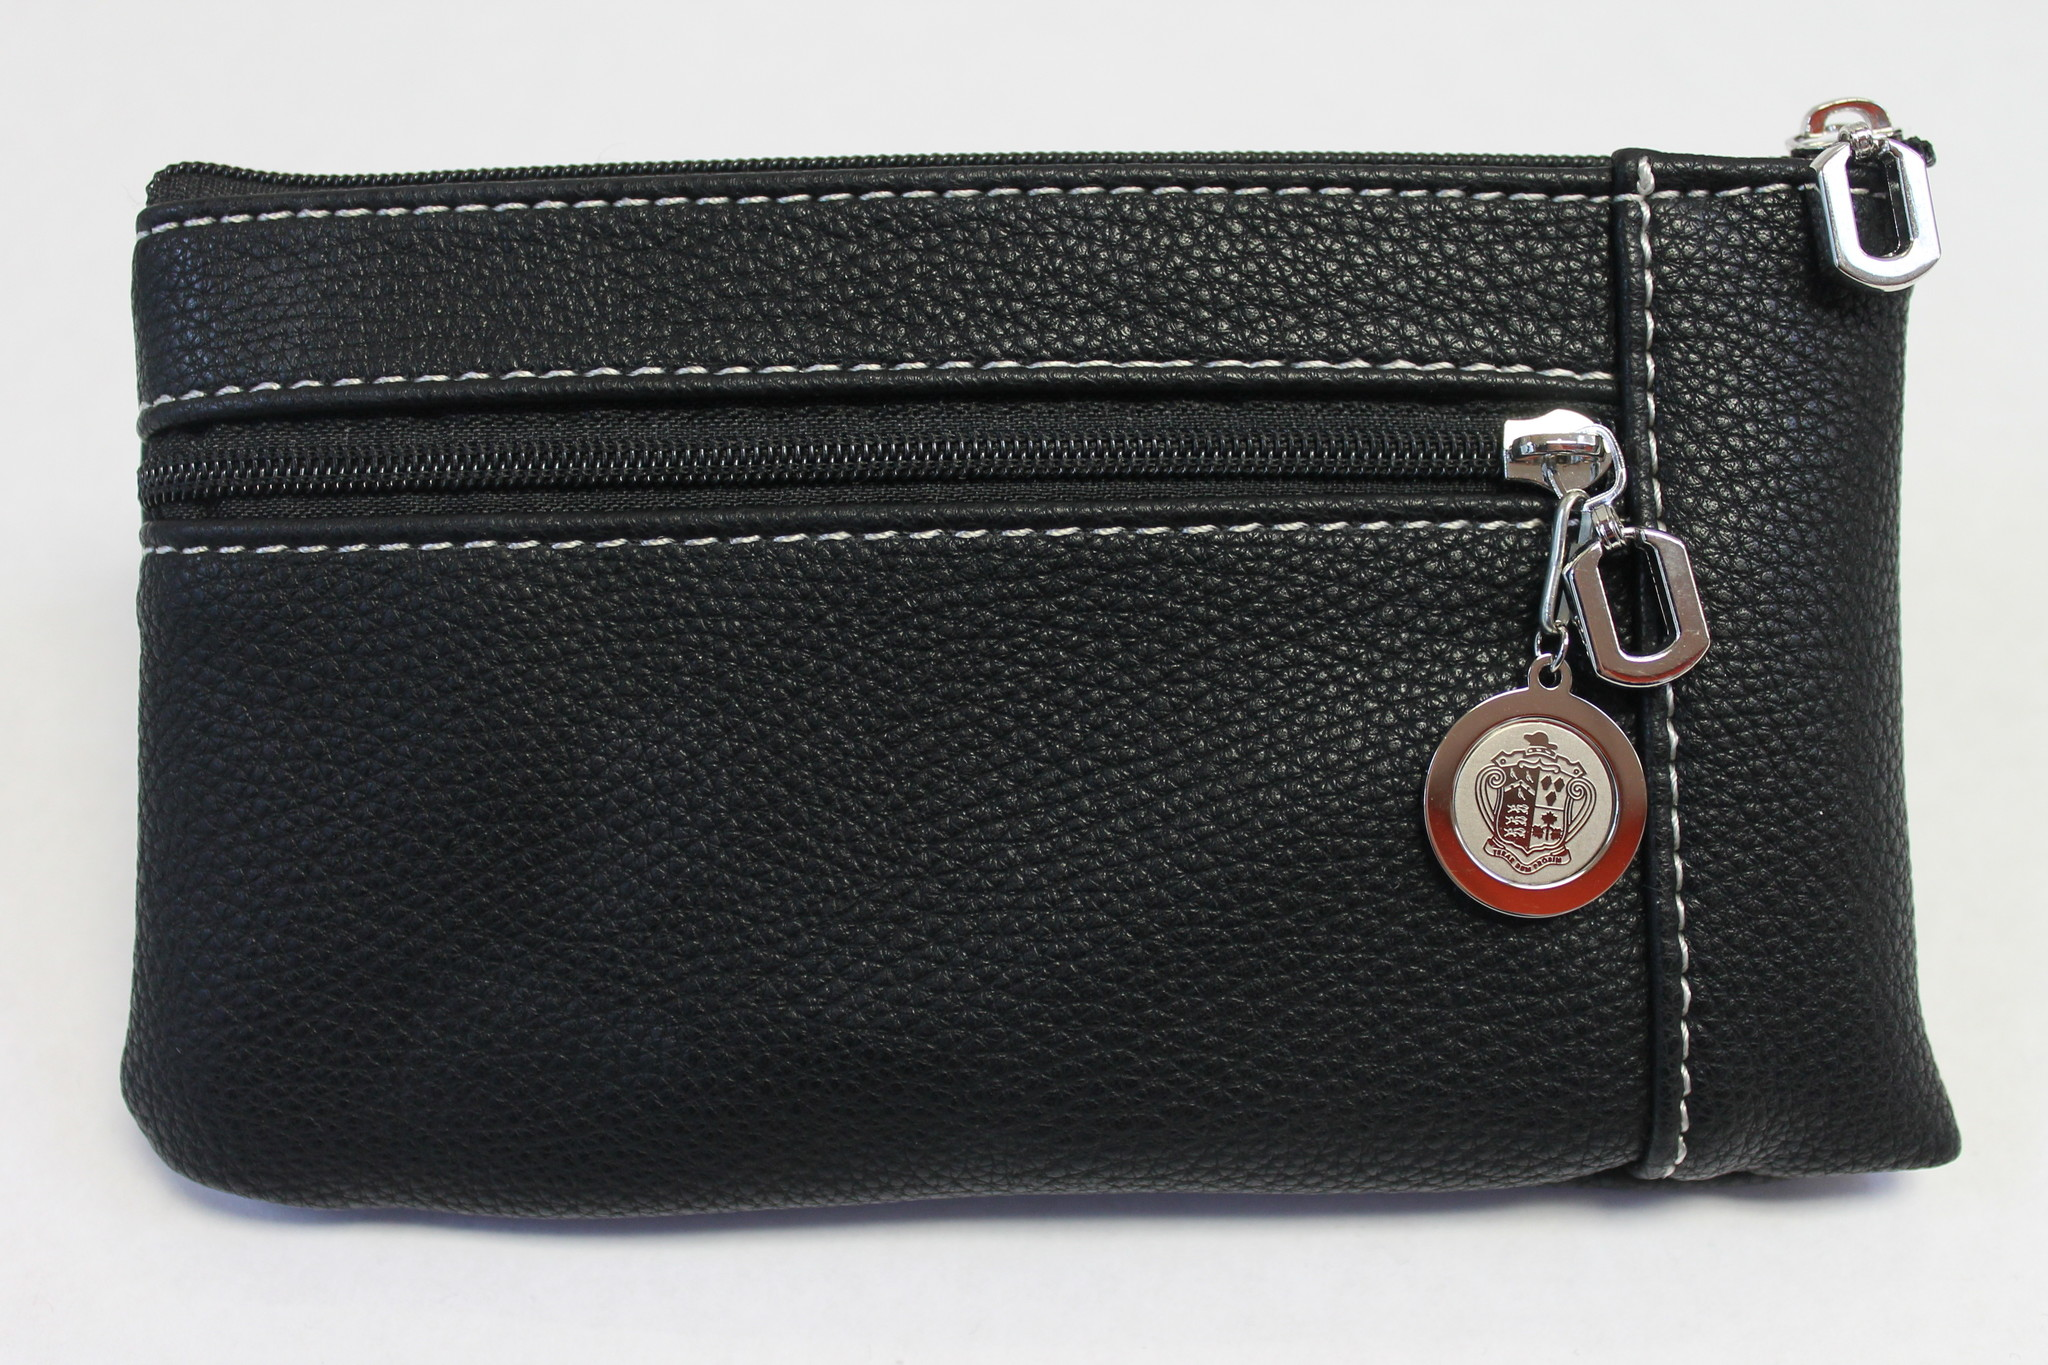 Wristlet with  Crested Pull Tab